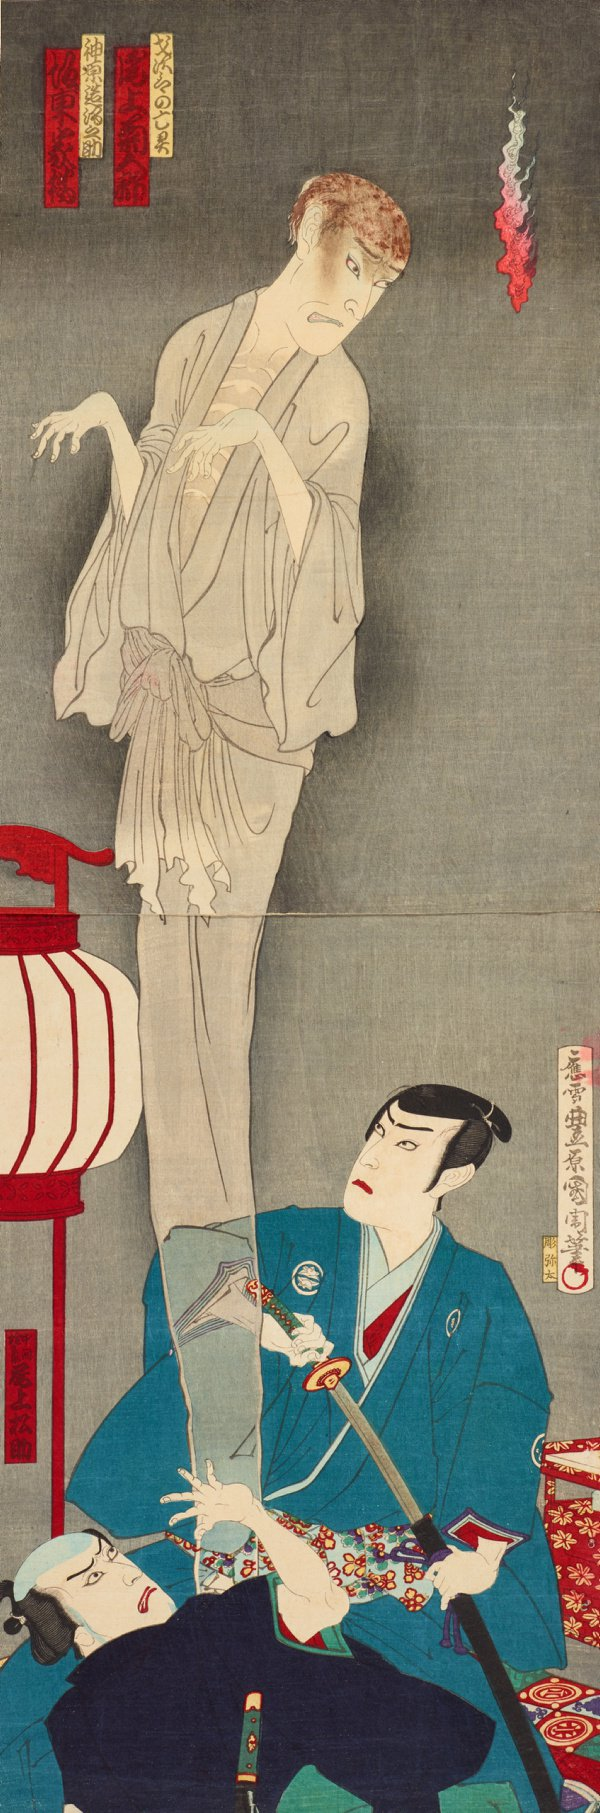 An image of The actors Onoe Kikugorō V as the ghost of Saijirō (above), Bandō Kakitsu I as Kanbara Mikinosuke and Onoe Matsusuke as the attendant Gonbei (below)